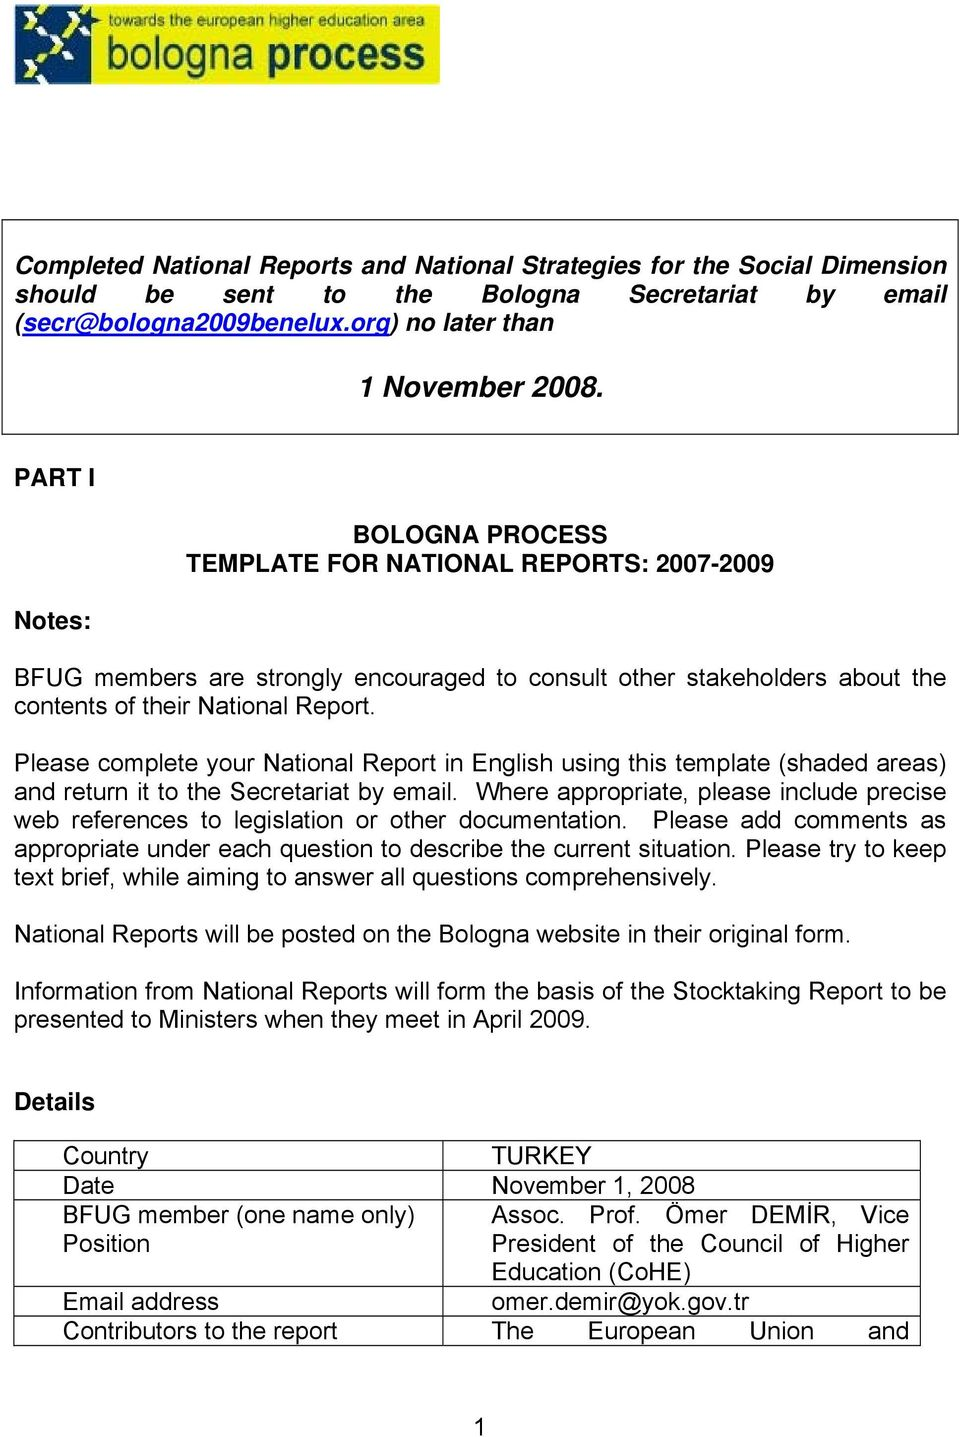 Please complete your National Report in English using this template (shaded areas) and return it to the Secretariat by email.